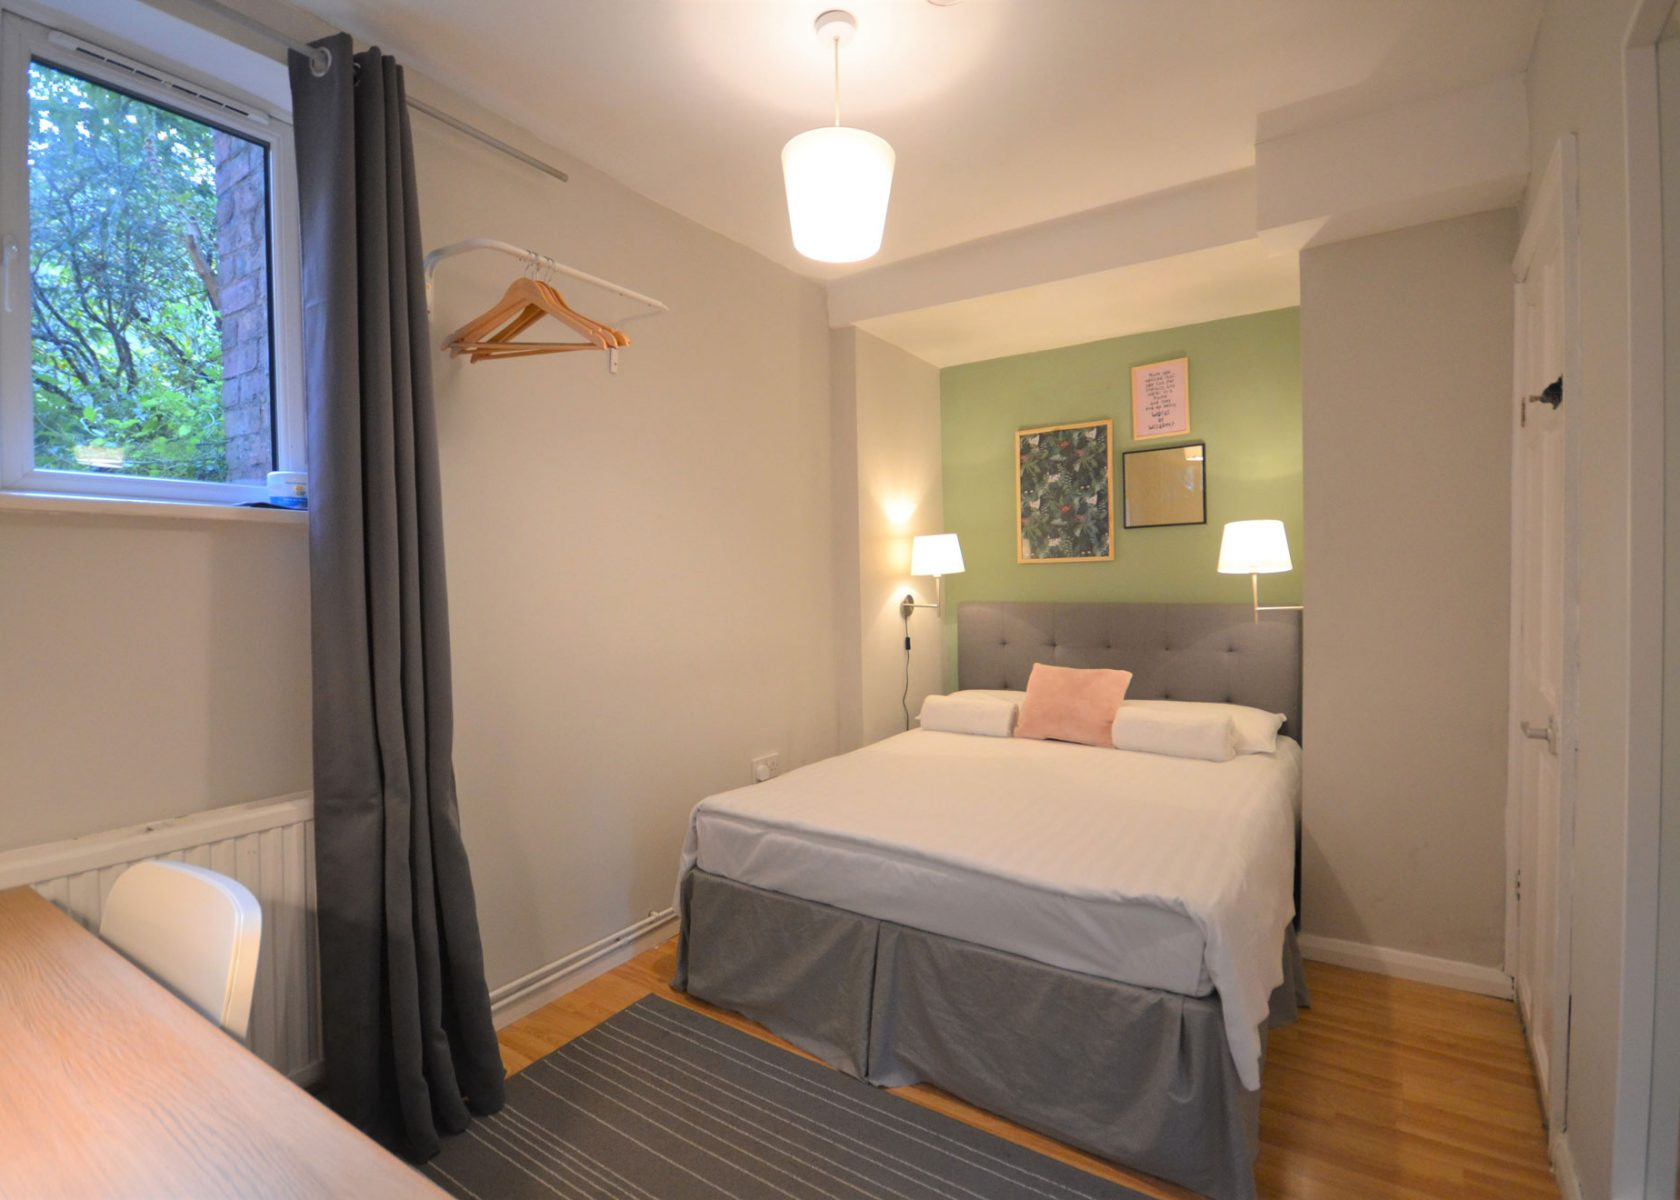 PRIVATE DOUBLE ENSUITE ROOM in Chicksand Brick Lane